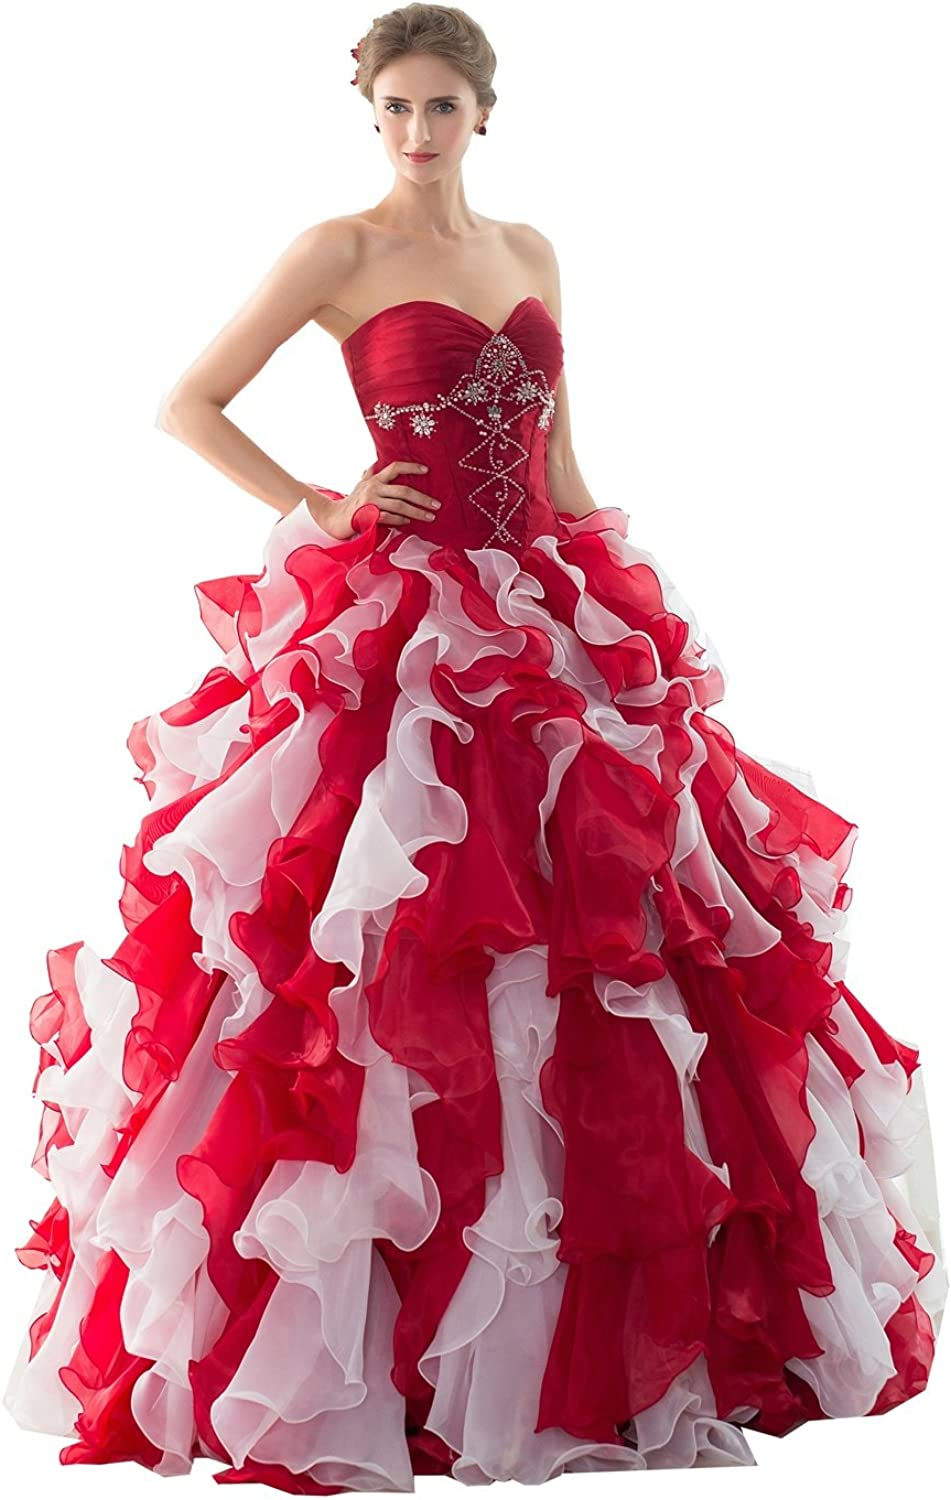 Lavaring Women's A Line Wrinkled Sweetheart Lace up Prom Dress with Coat